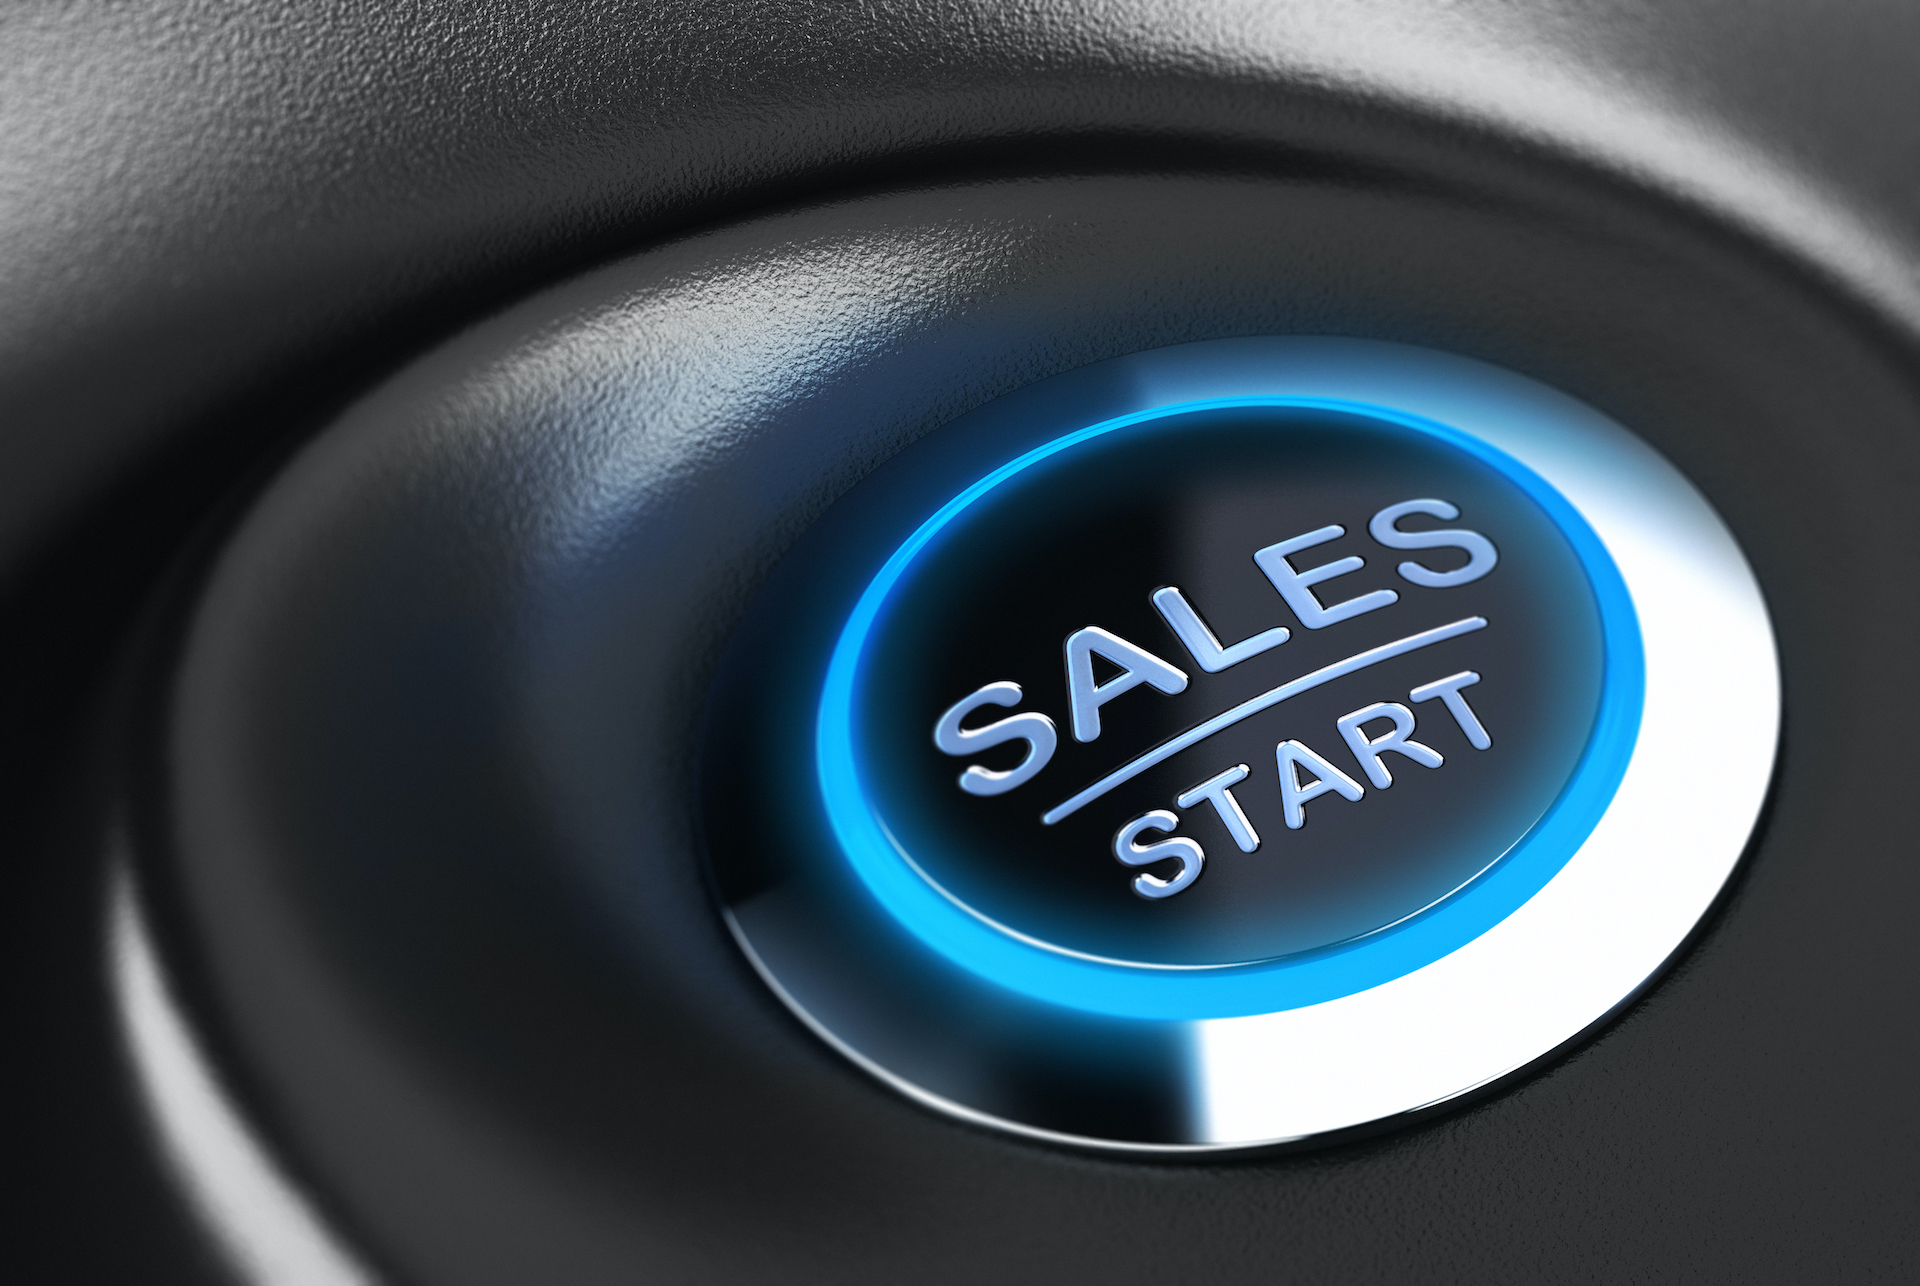 Sales button with blue light